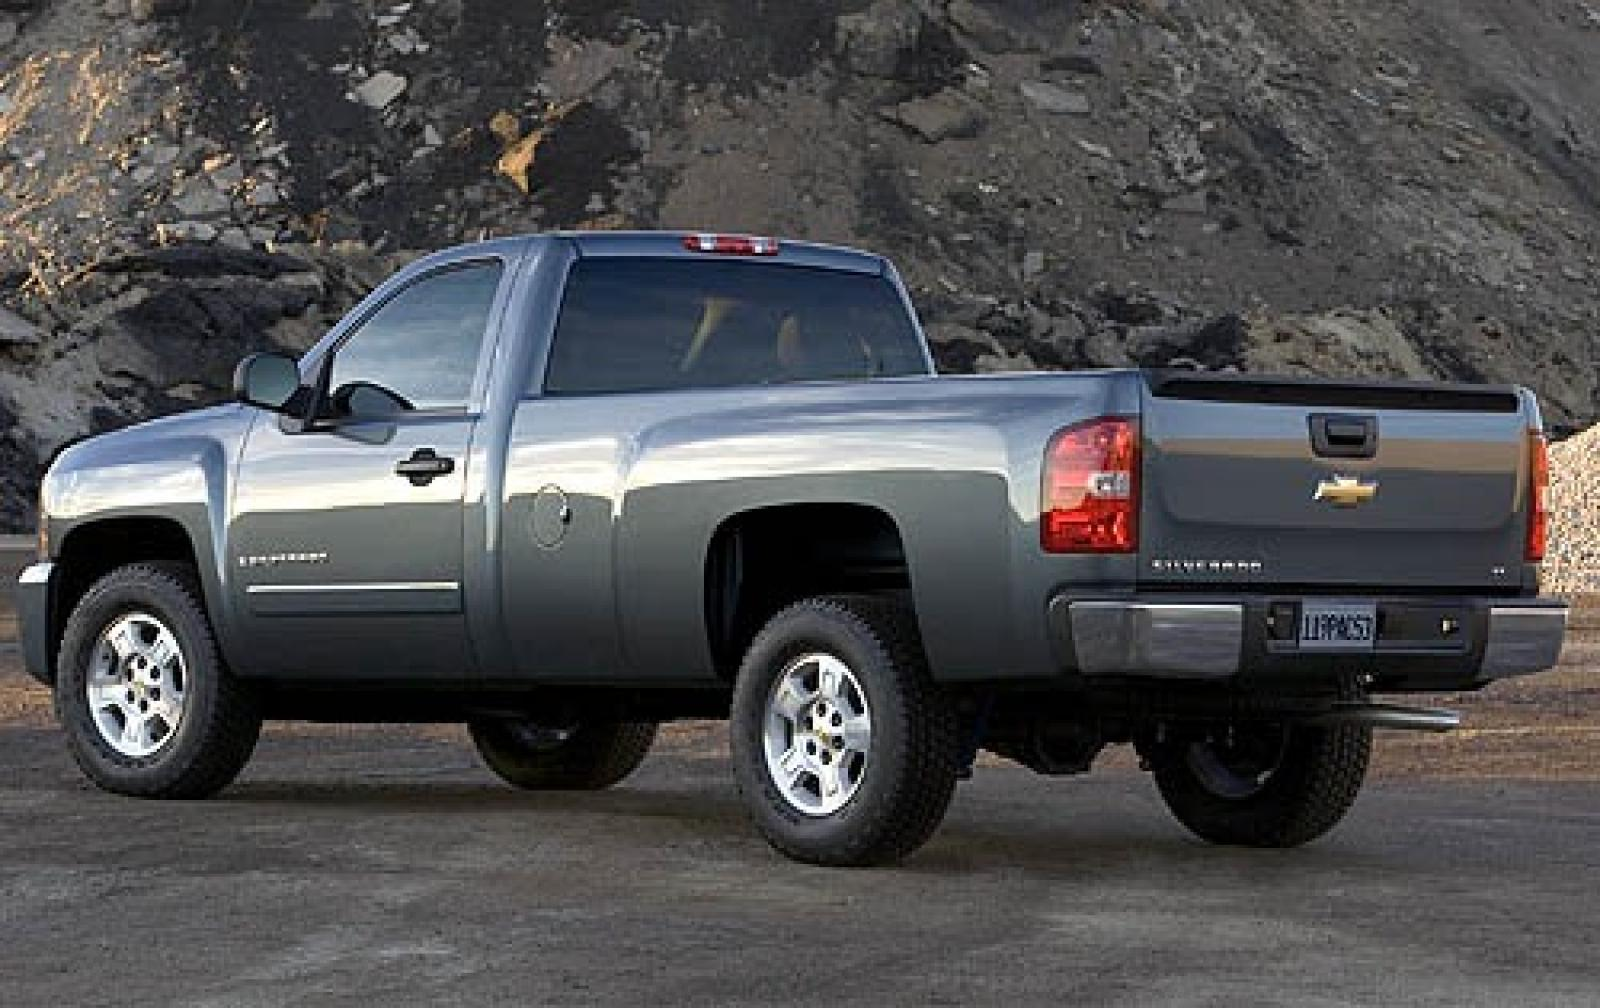 ... 2008 Chevrolet Silverado Interior #9 800 1024 1280 1600 Origin ...